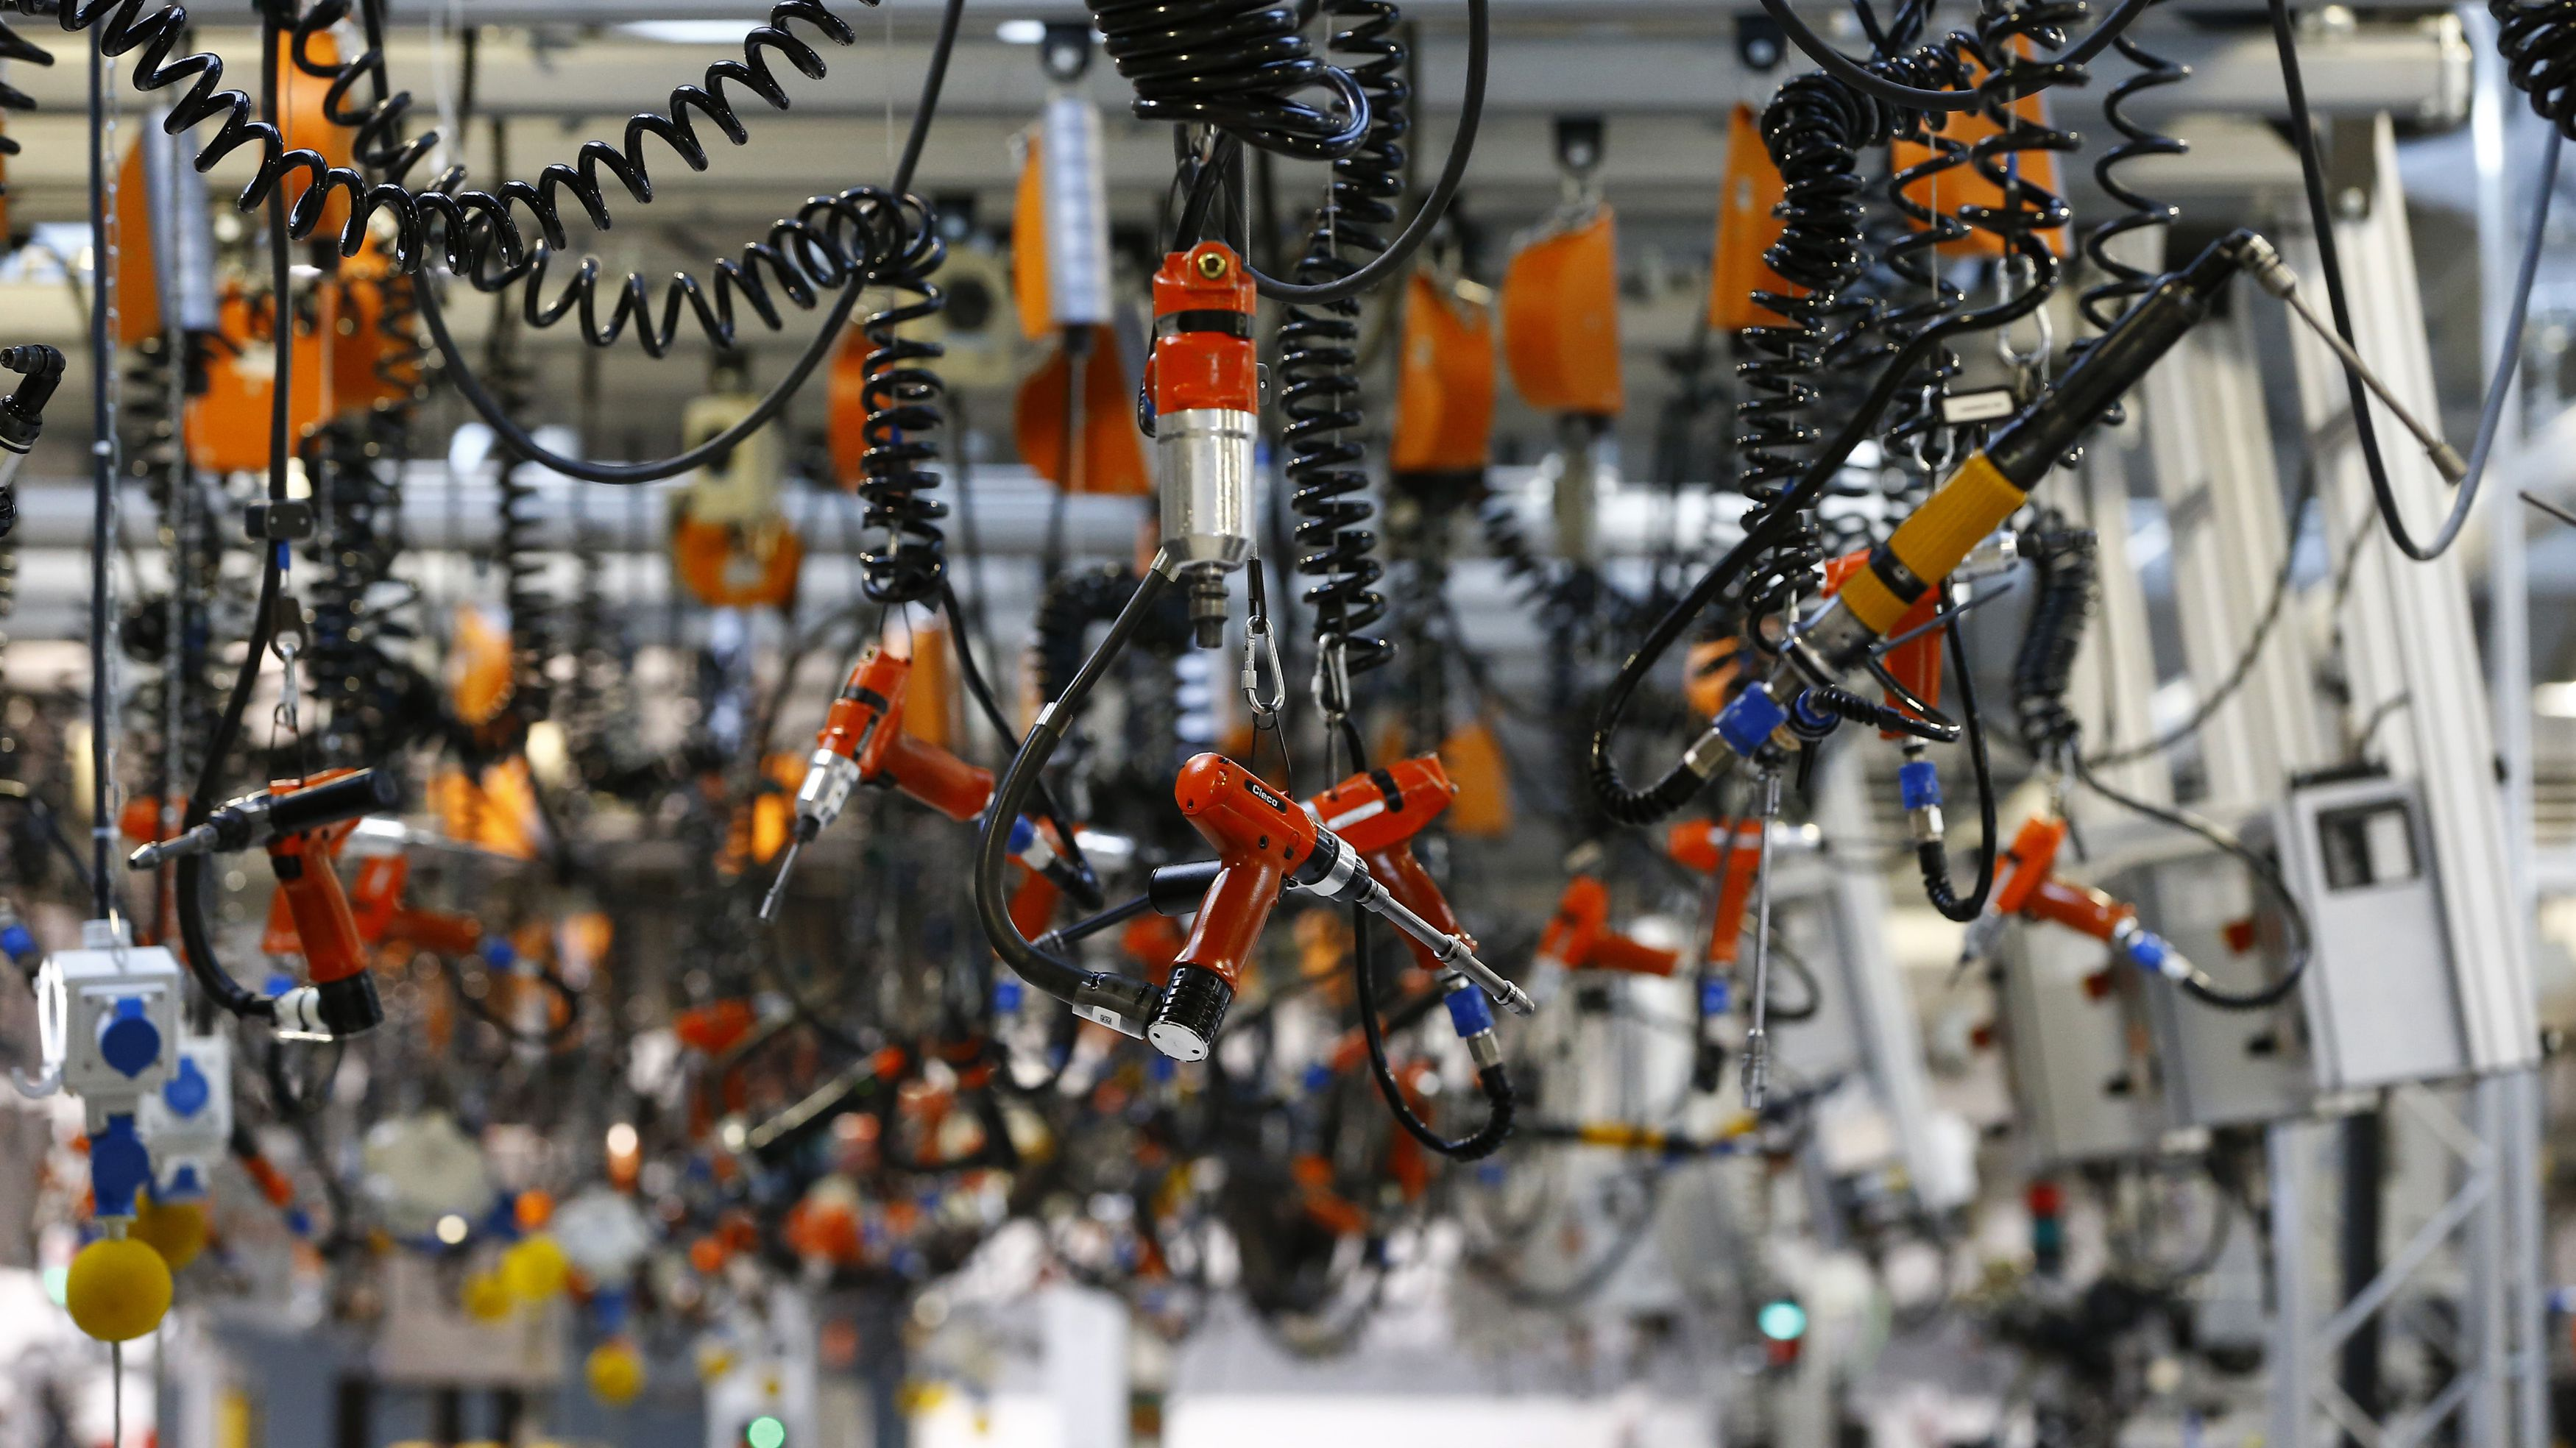 Various tools are seen hanging from the ceiling at the engine manufacturing unit for the new Mercedes AMG GT super sports cars during a factory tour for journalists at the Mercedes AMG headquarters in Affalterbach near Stuttgart, September 9, 2014. According to AMG, each engine for the new sports car will be manufactured by hand from a worker, with his personalized name plate on it. The new Mercedes AMG GT, from German car manufacturer Mercedes' sports car unit AMG, will be unveiled during a World Premier party on September 9. REUTERS/Kai Pfaffenbach (GERMANY - Tags: TRANSPORT BUSINESS EMPLOYMENT SPORT MOTORSPORT)